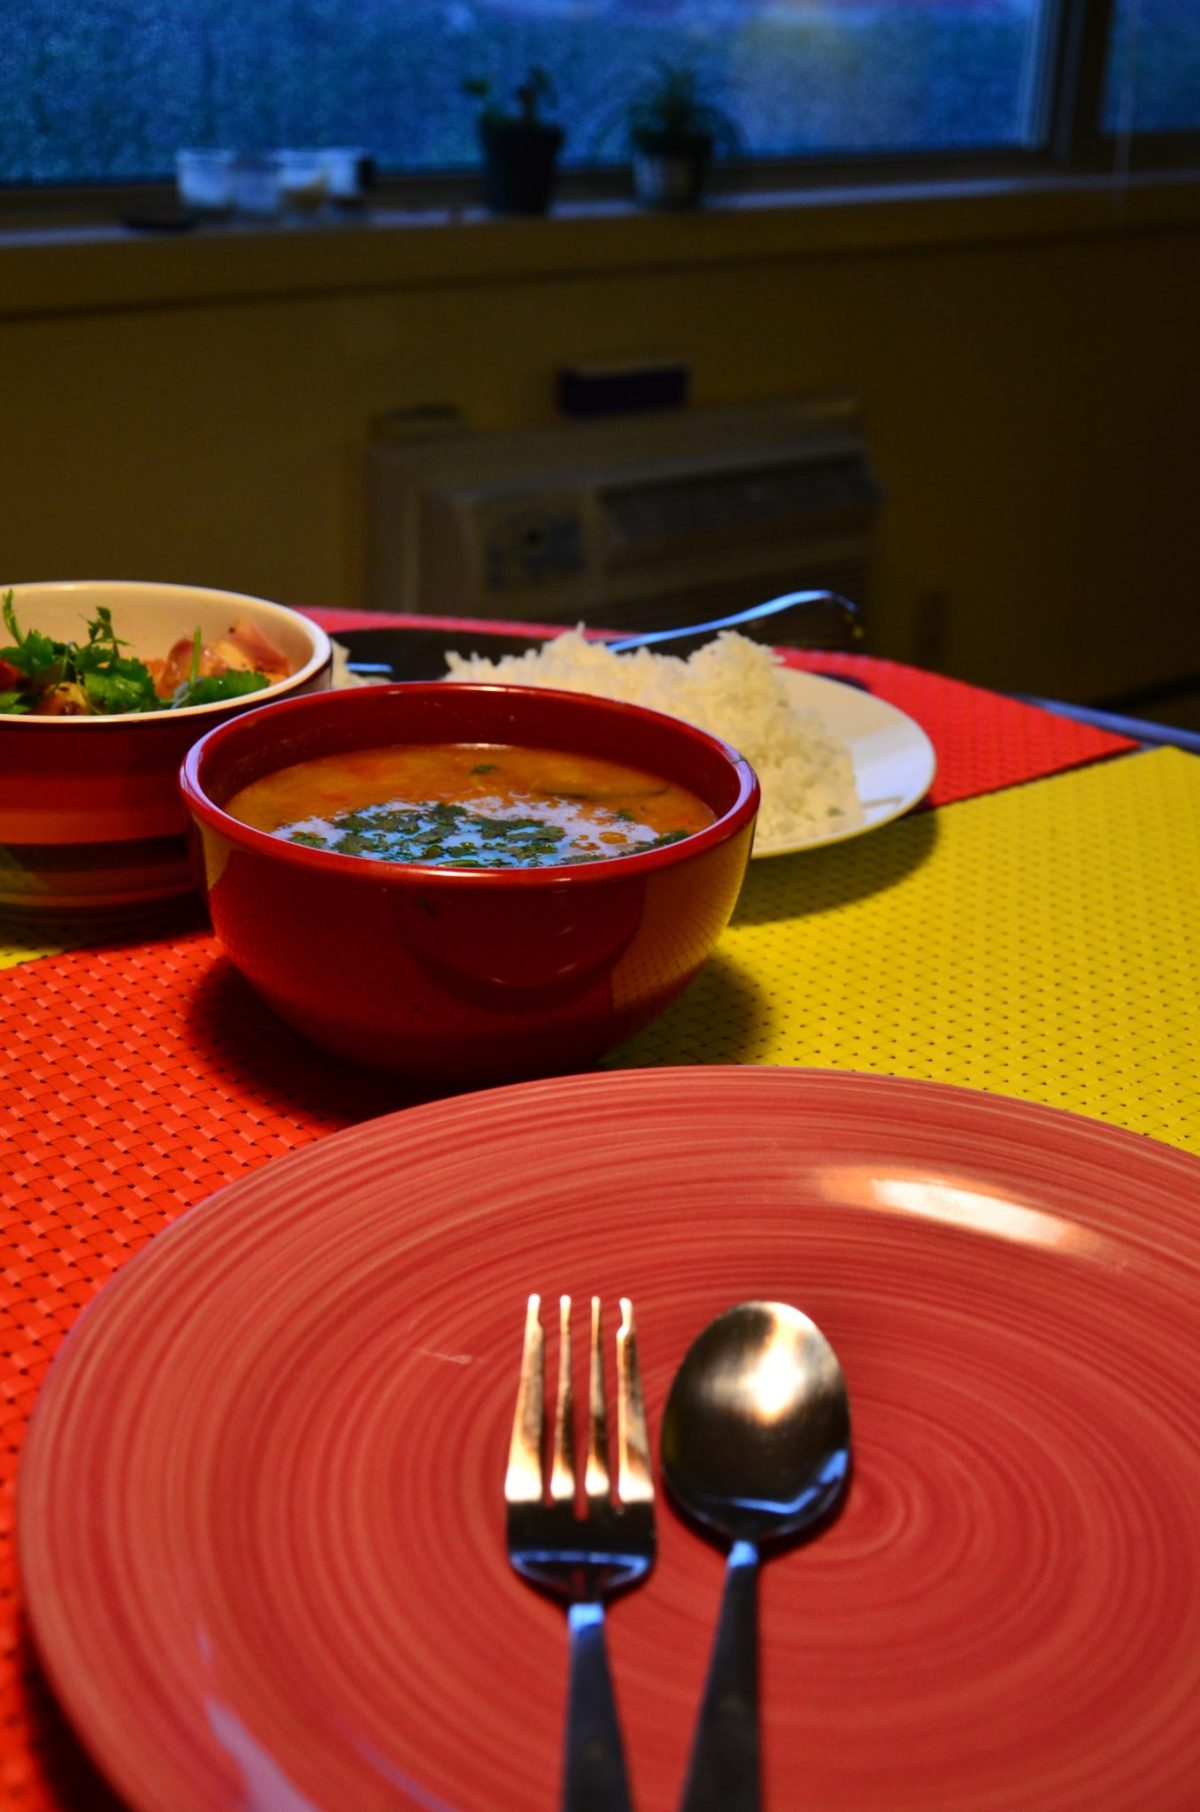 Dal, Paneer, Rice - quick Indian meal